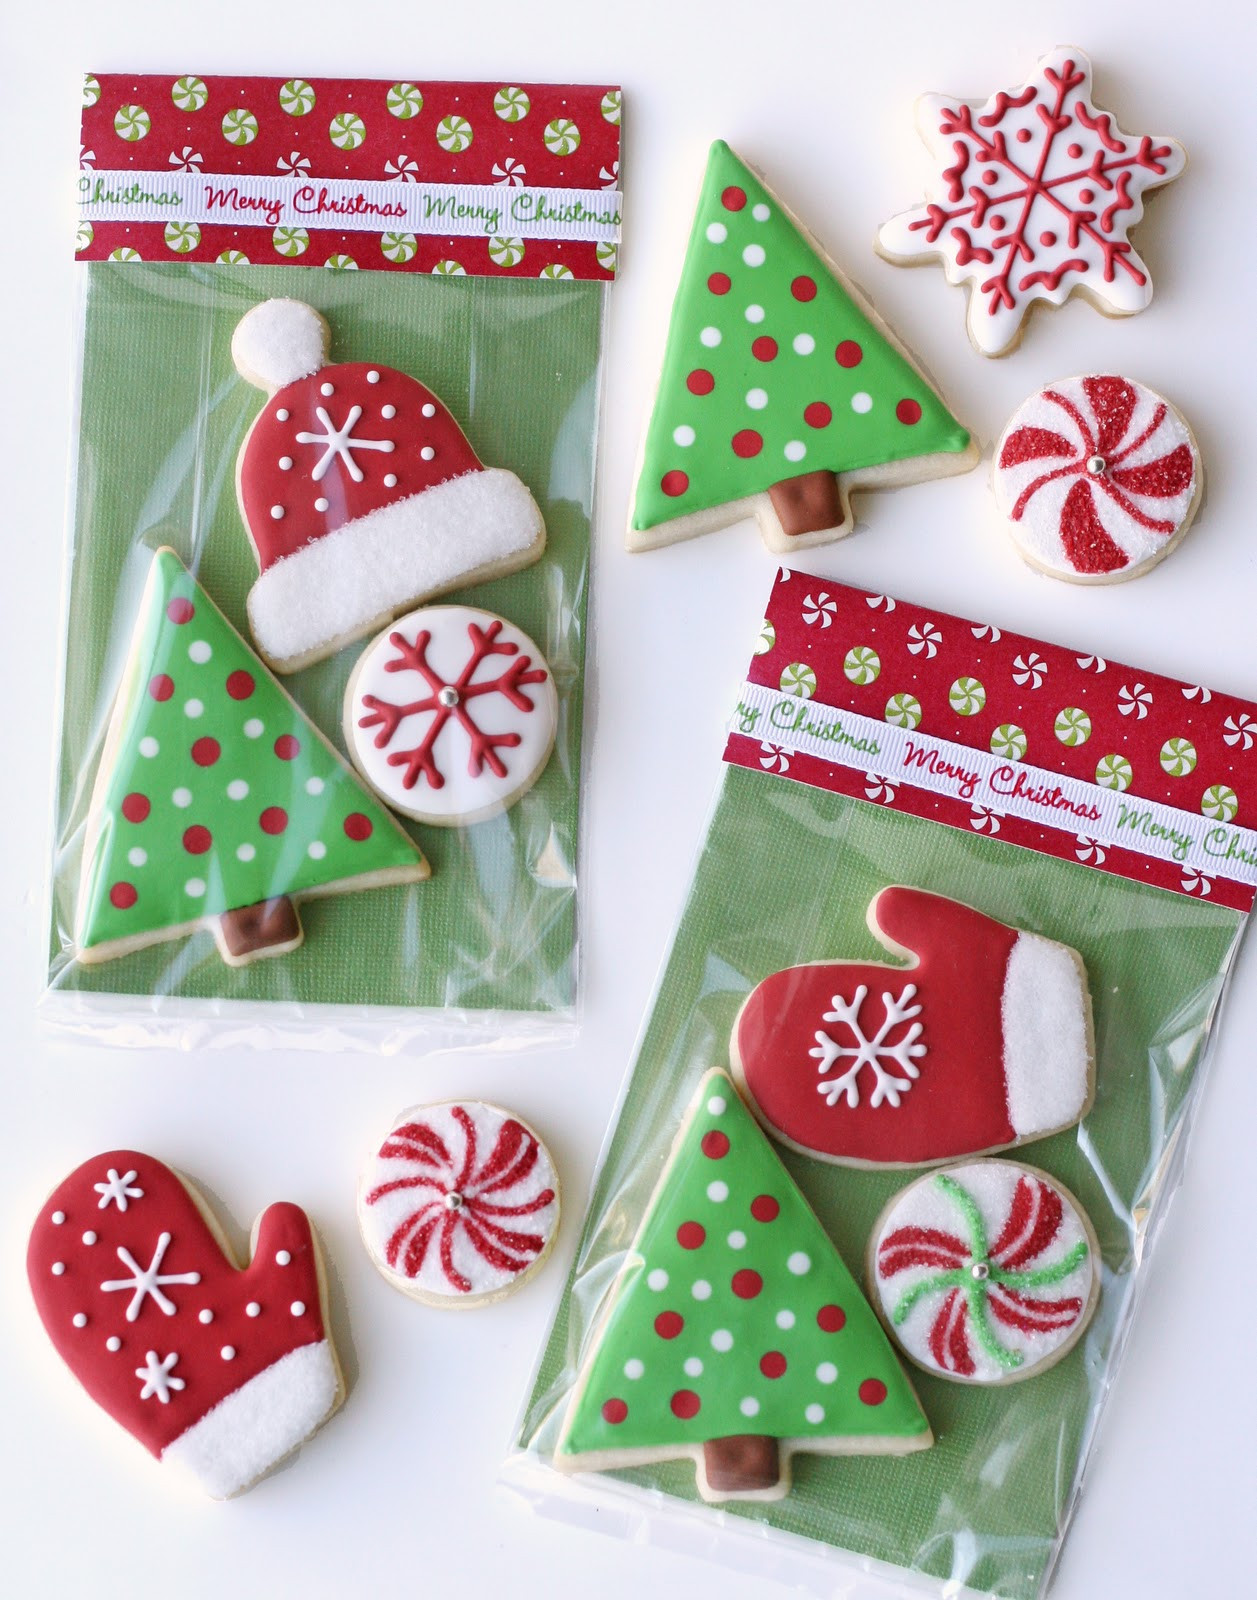 Christmas Cookies Packaging  Christmas Cookies and Cute Packaging – Glorious Treats